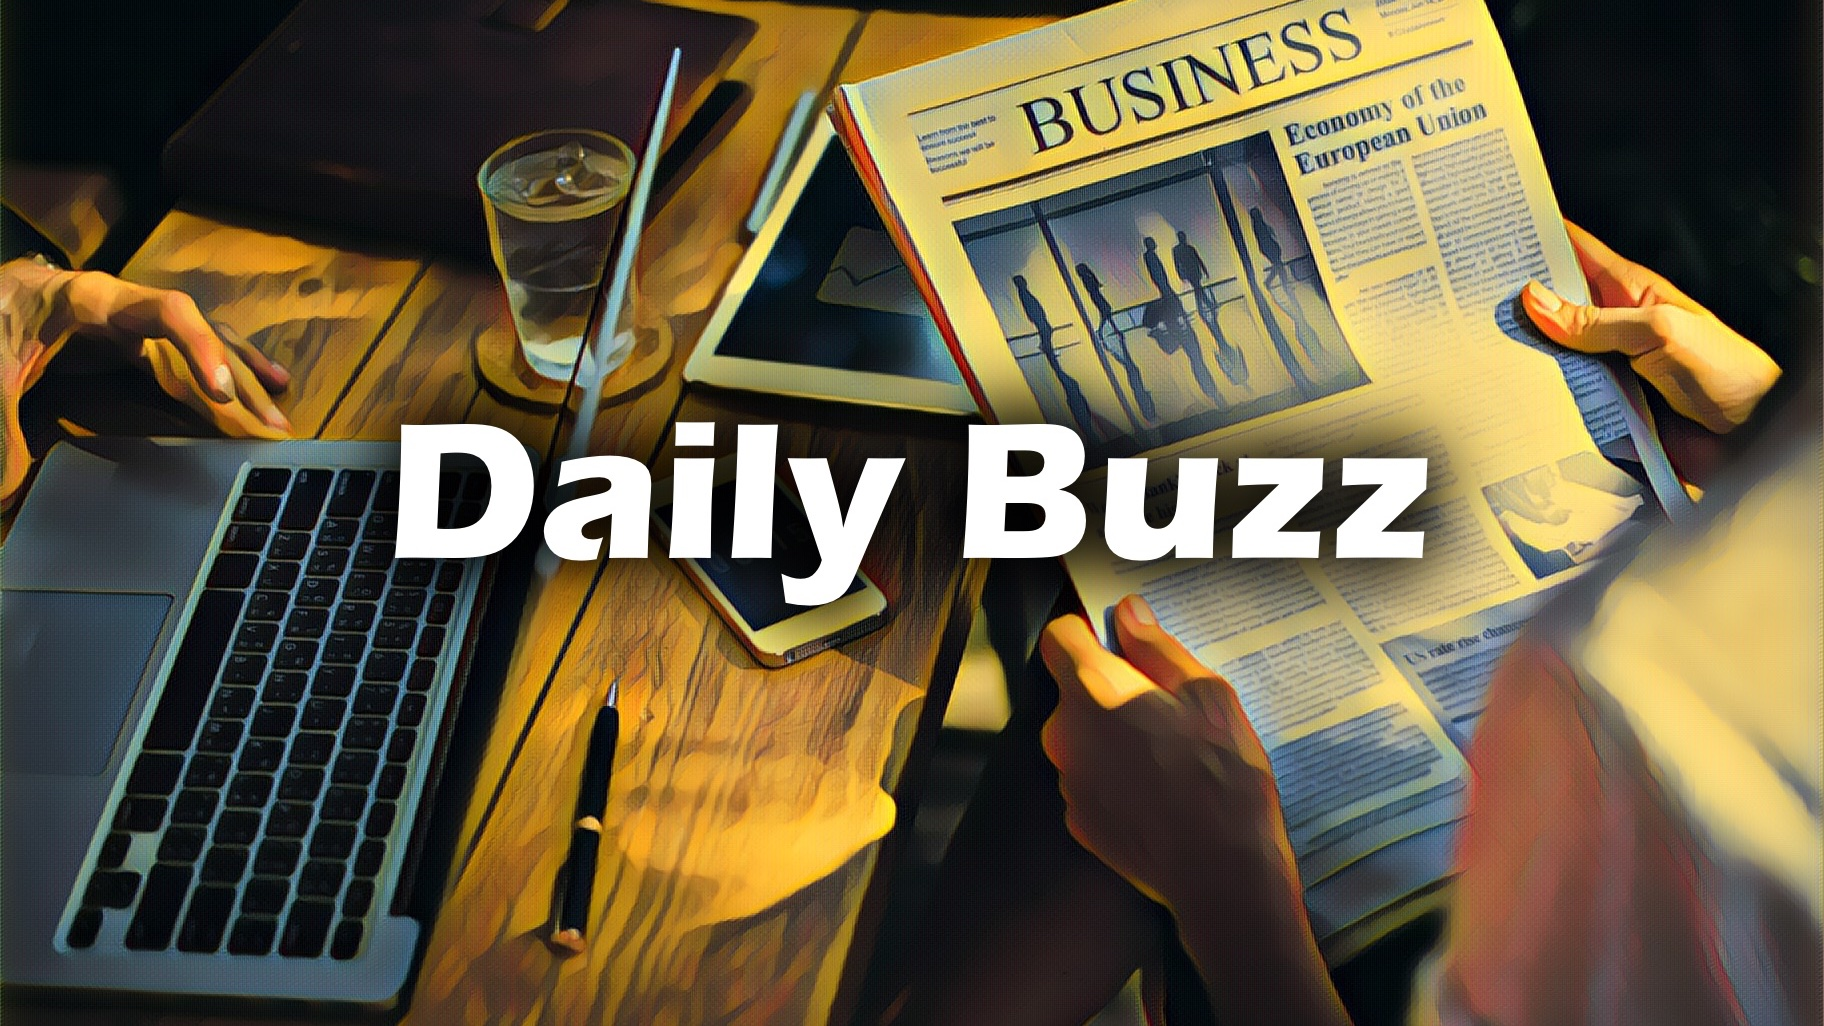 DailyBuzz Friday 29 June 2018